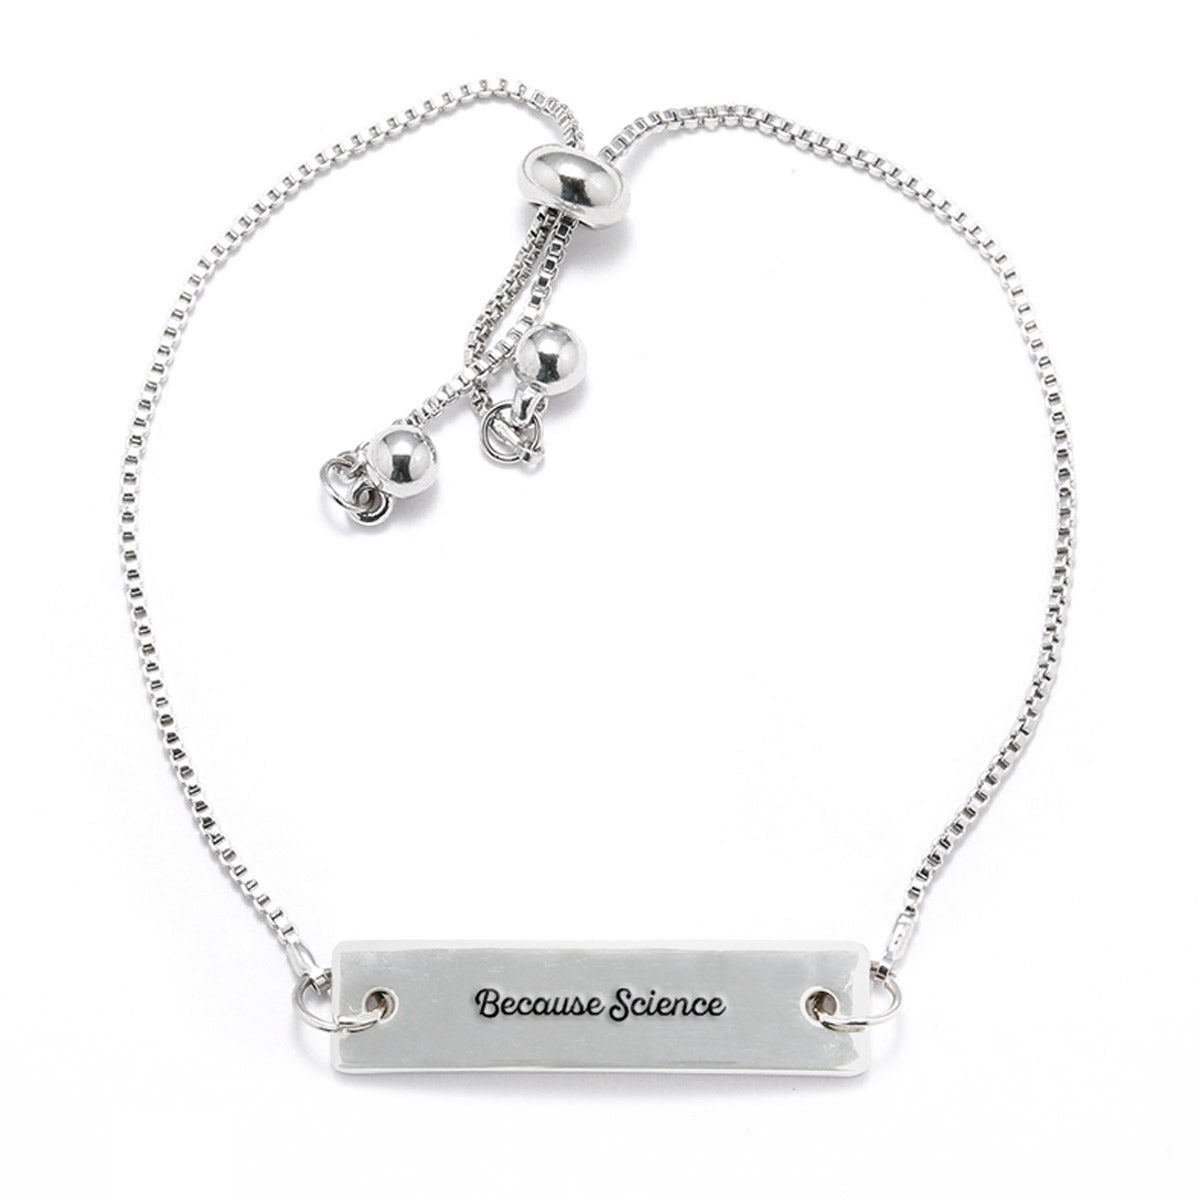 Why? Because Science Silver Bar Adjustable Bracelet